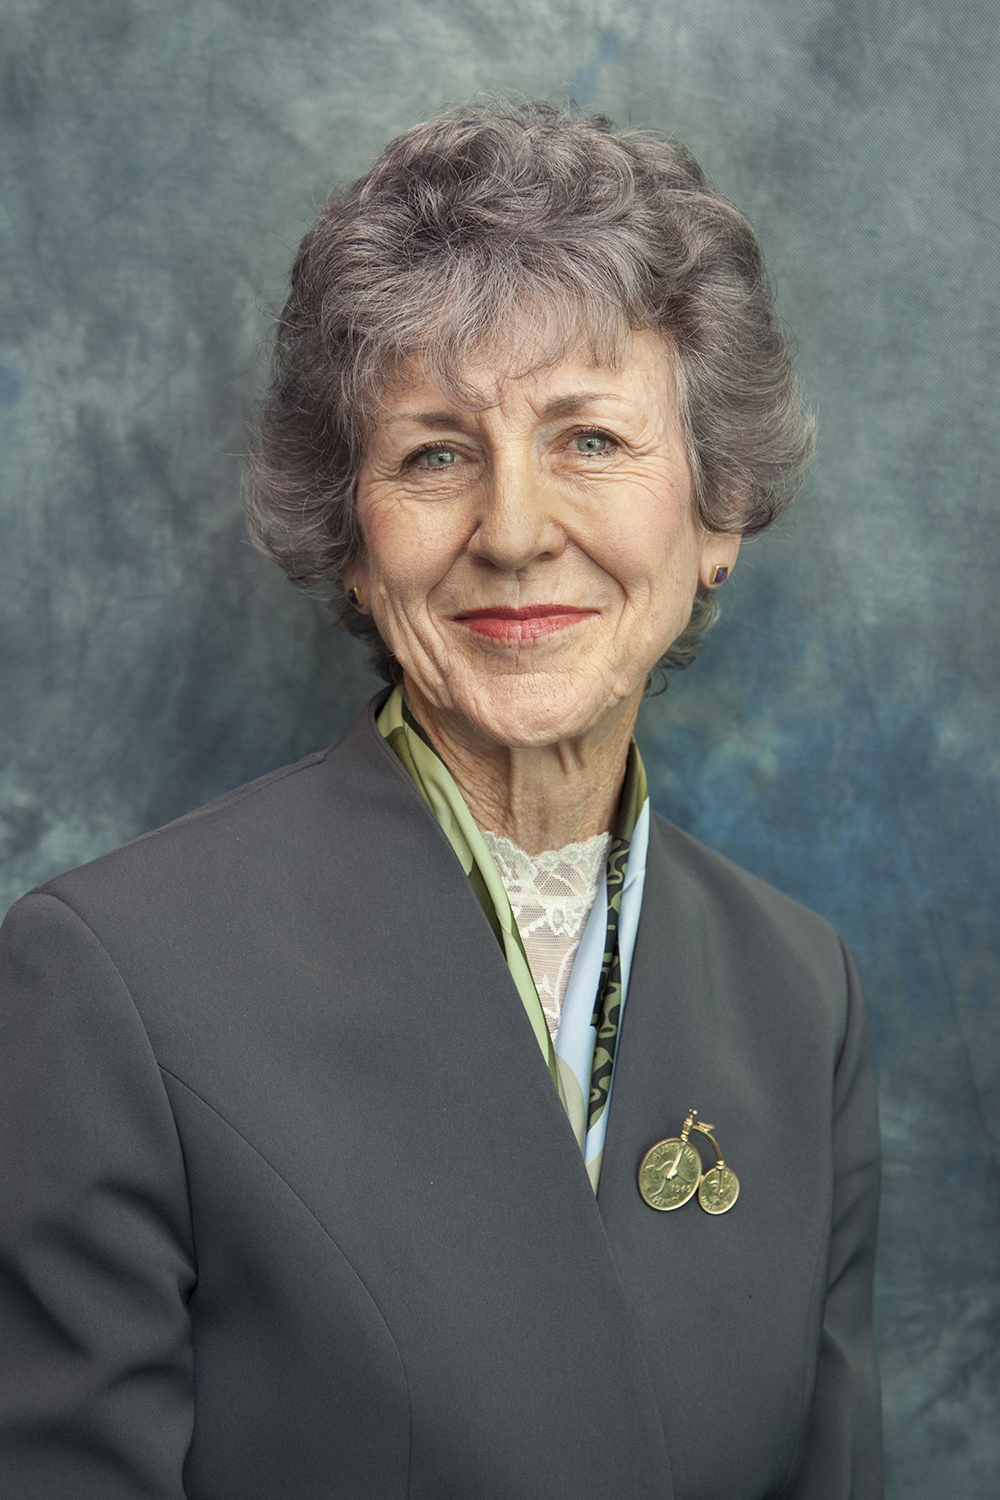 A photo of Anne Donaldson